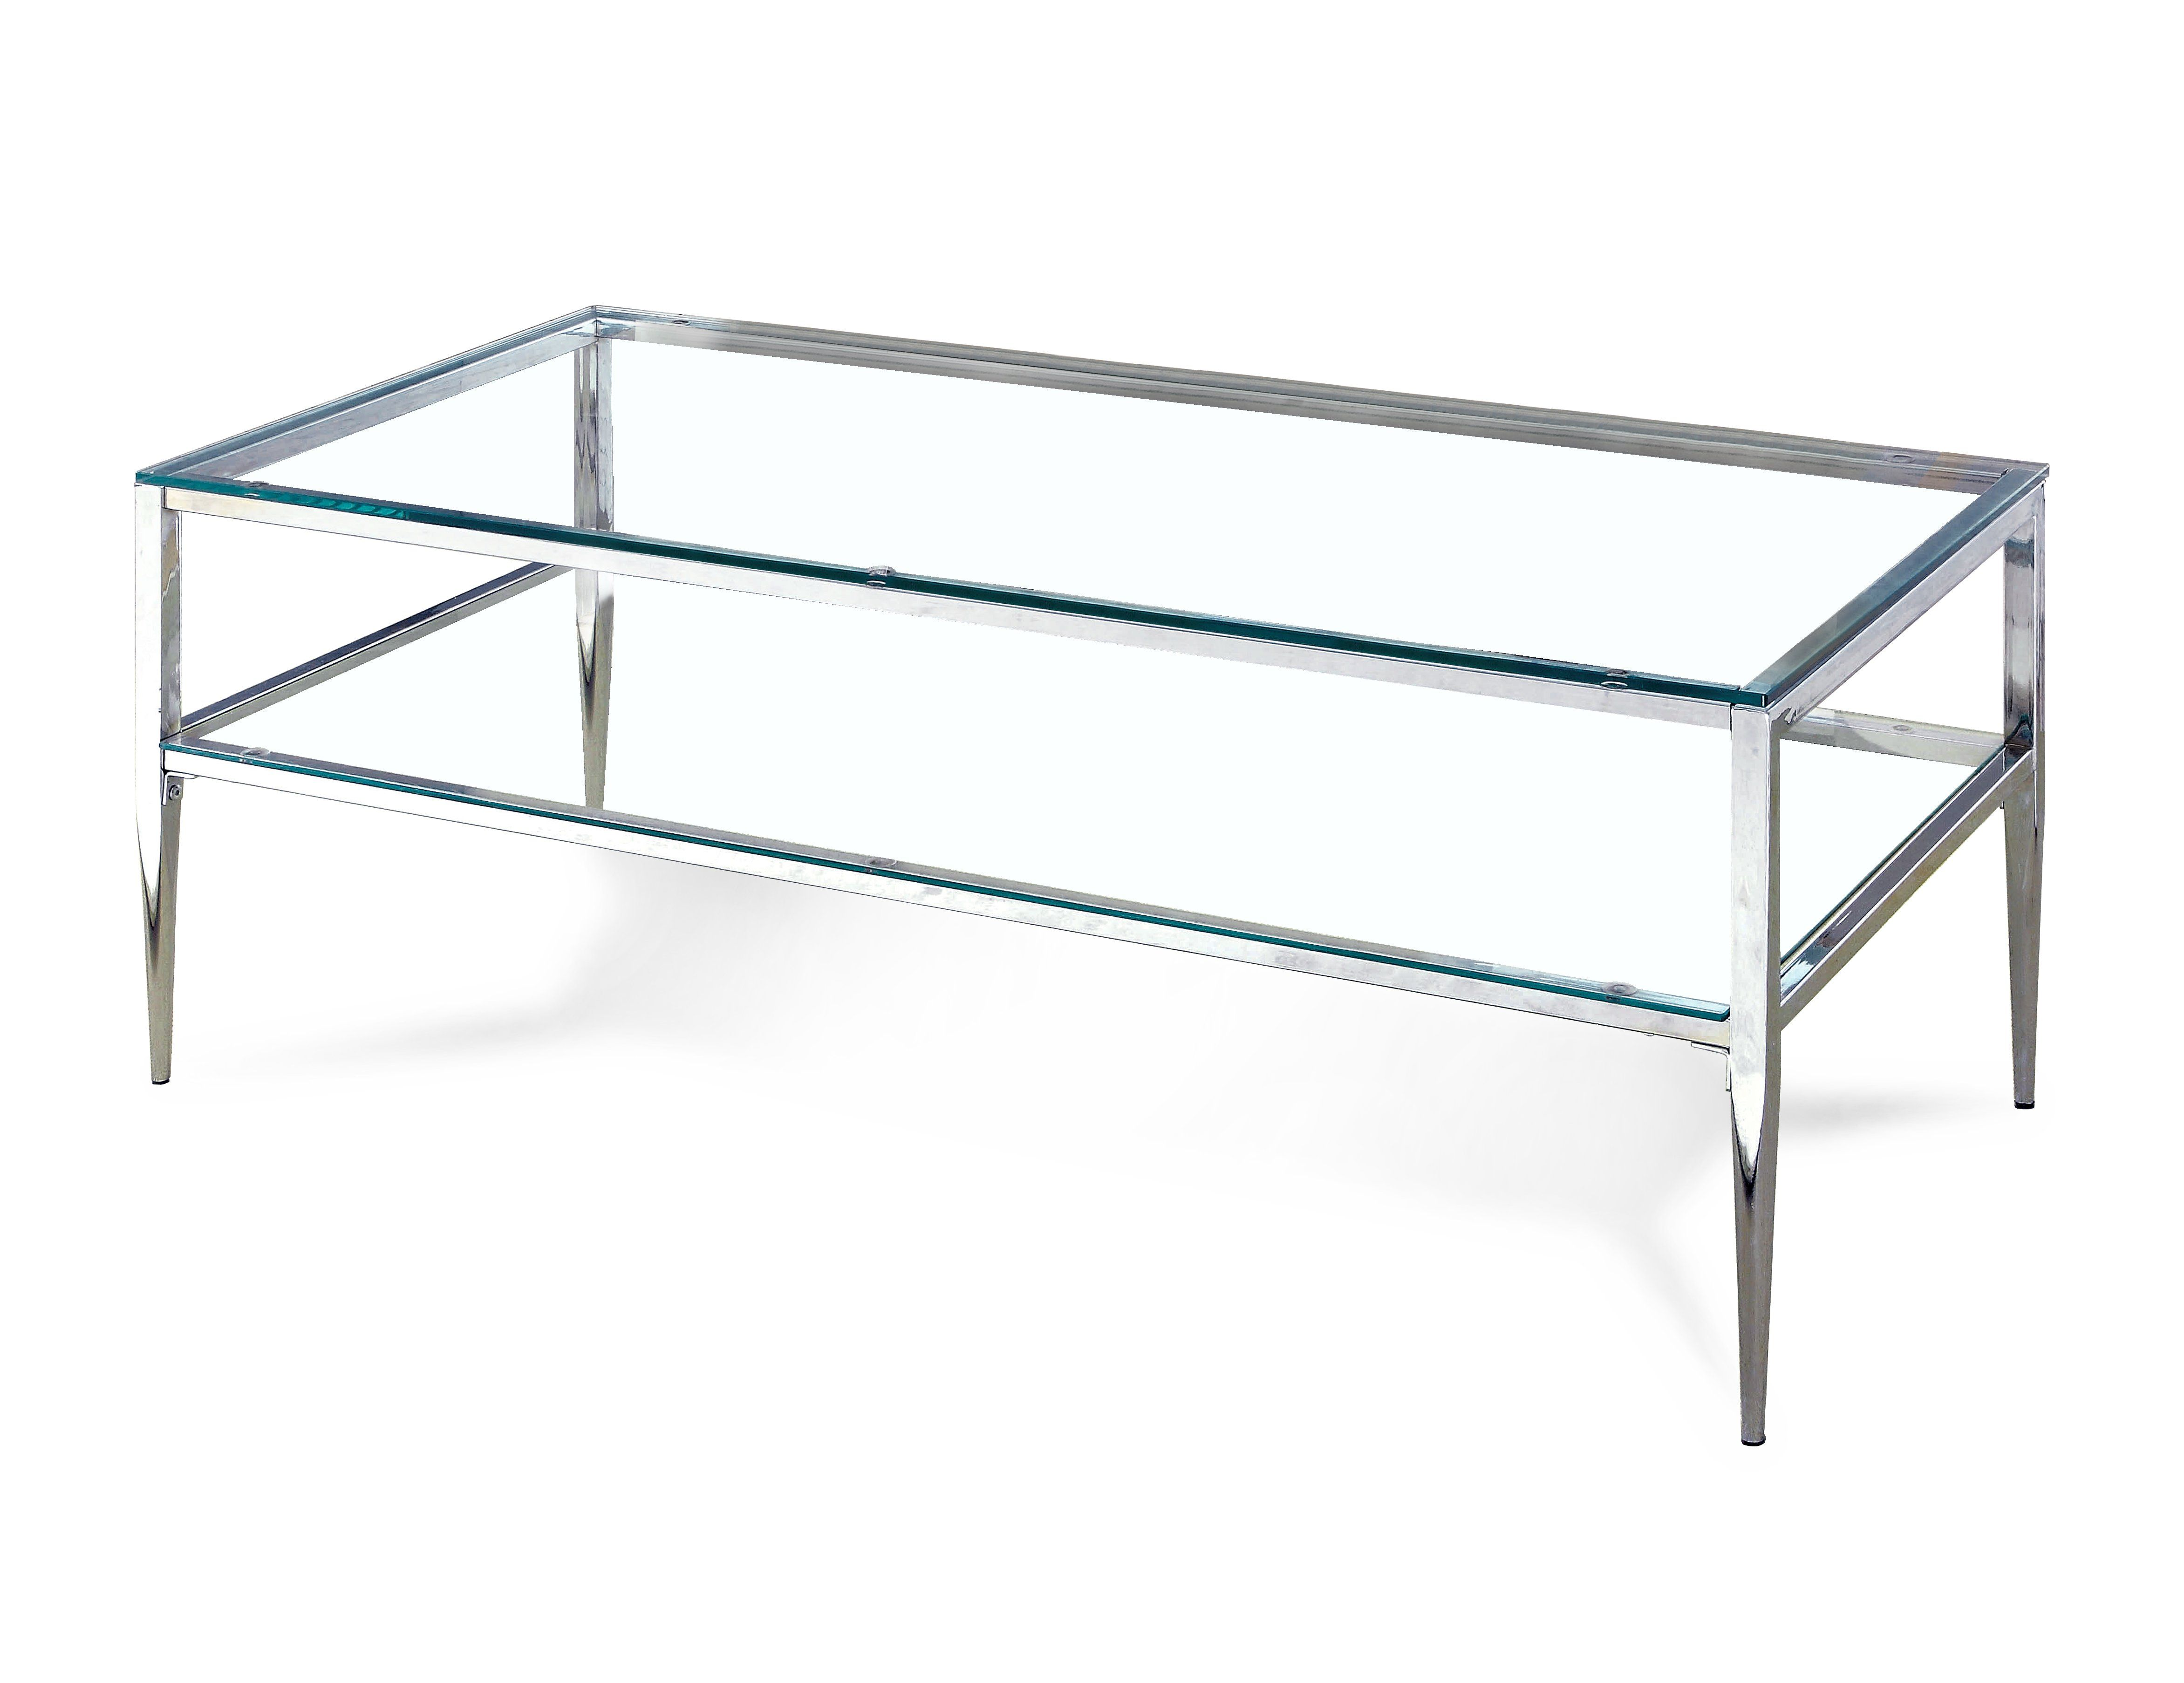 Rosaline Contemporary Chrome Coffee Table Contemporary Glass Coffee Tables Coffee Table Metal Coffee Table [ 3613 x 4688 Pixel ]